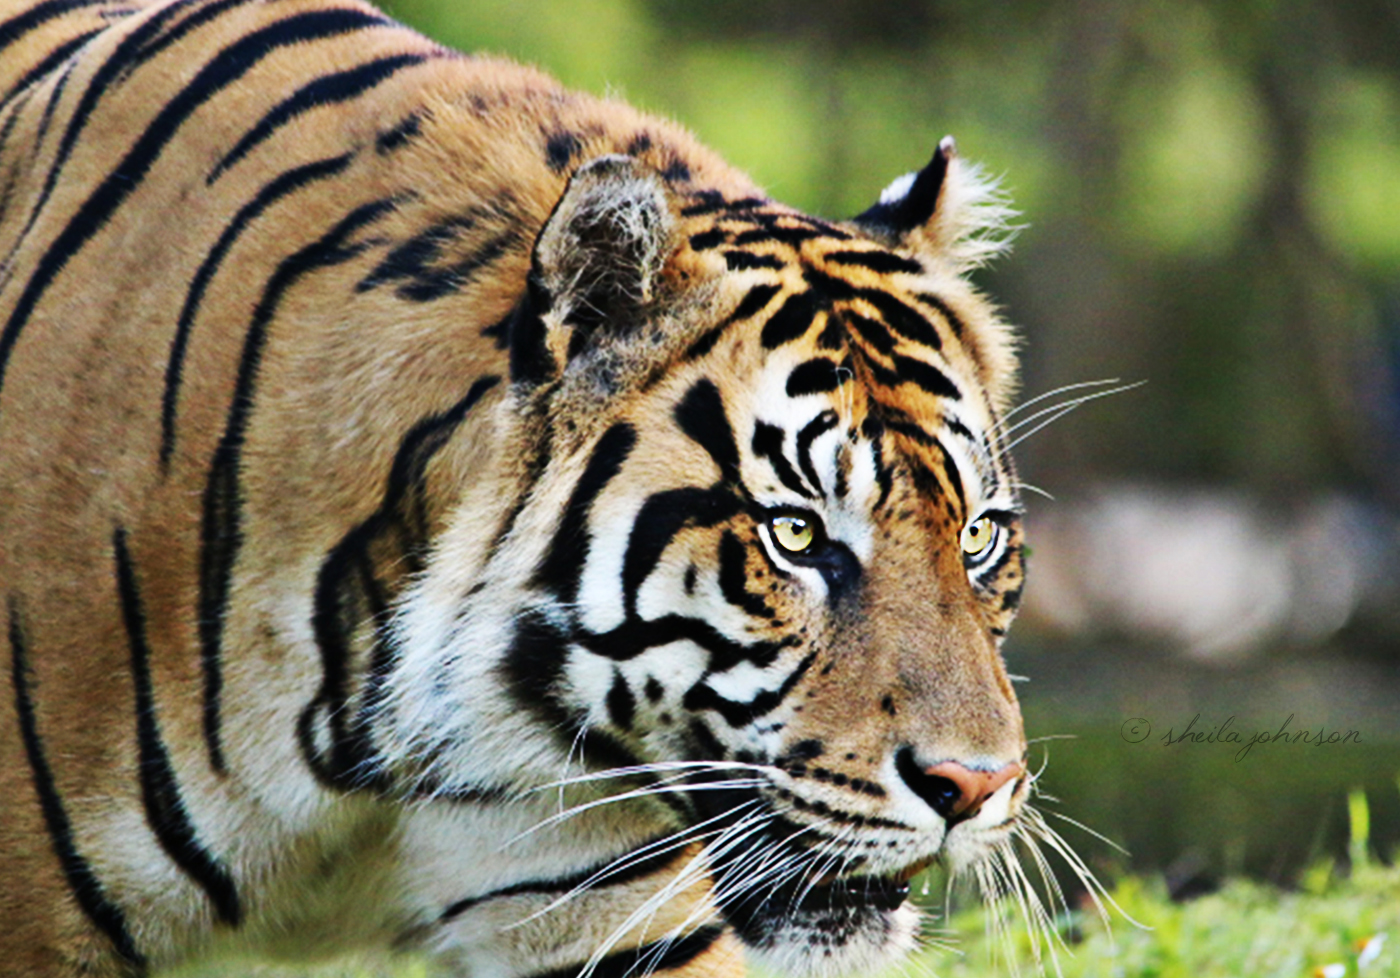 Here Again Is Berani, The Male Sumatran Tiger Who Lives At Zoo Miami. One Of The Best Features Of Zoo Miami Is That Most Animal Habitats Are Not Actually Enclosed. They're Surrounded By Motes Which Keep The Animal Exhibits Protected, But The Animals Themselves Are Uncaged.